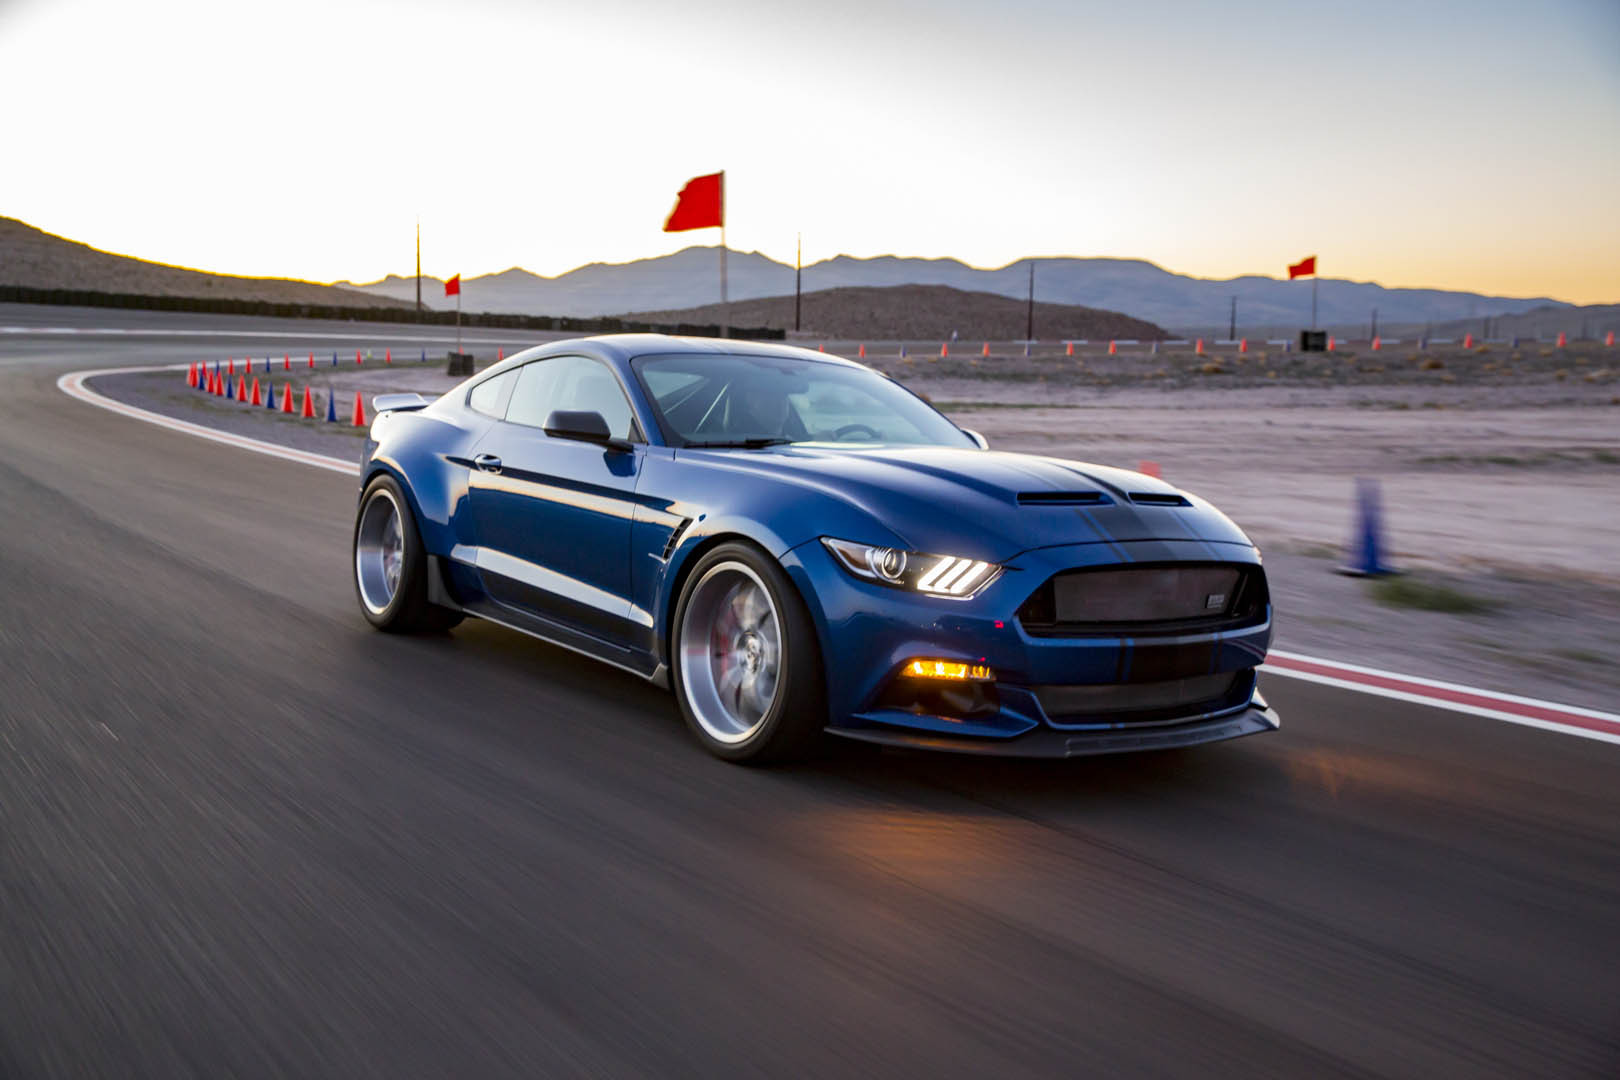 Wide Body Road Racing 2017 Shelby Super Snake Concept Car Unveiled ...